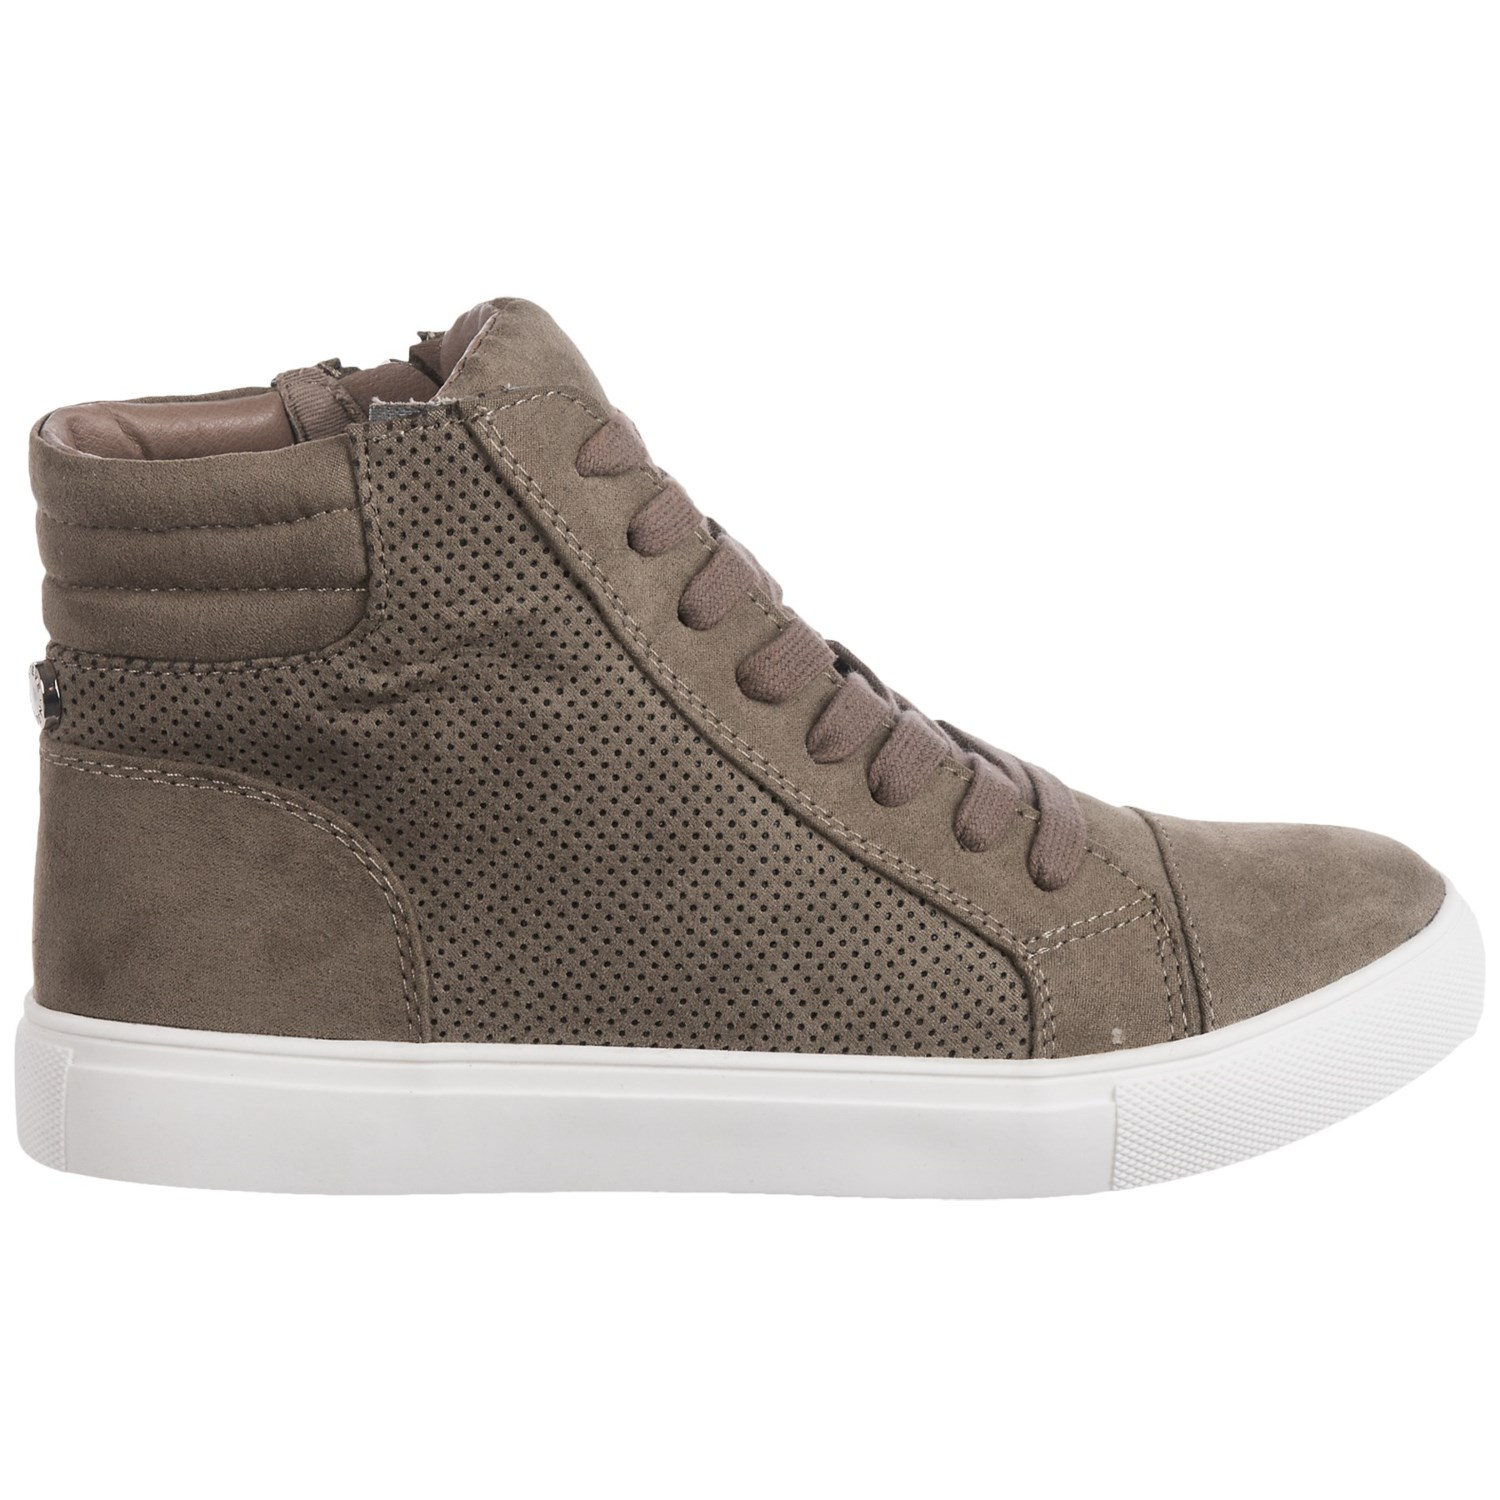 high top sneakers for women - photo #34